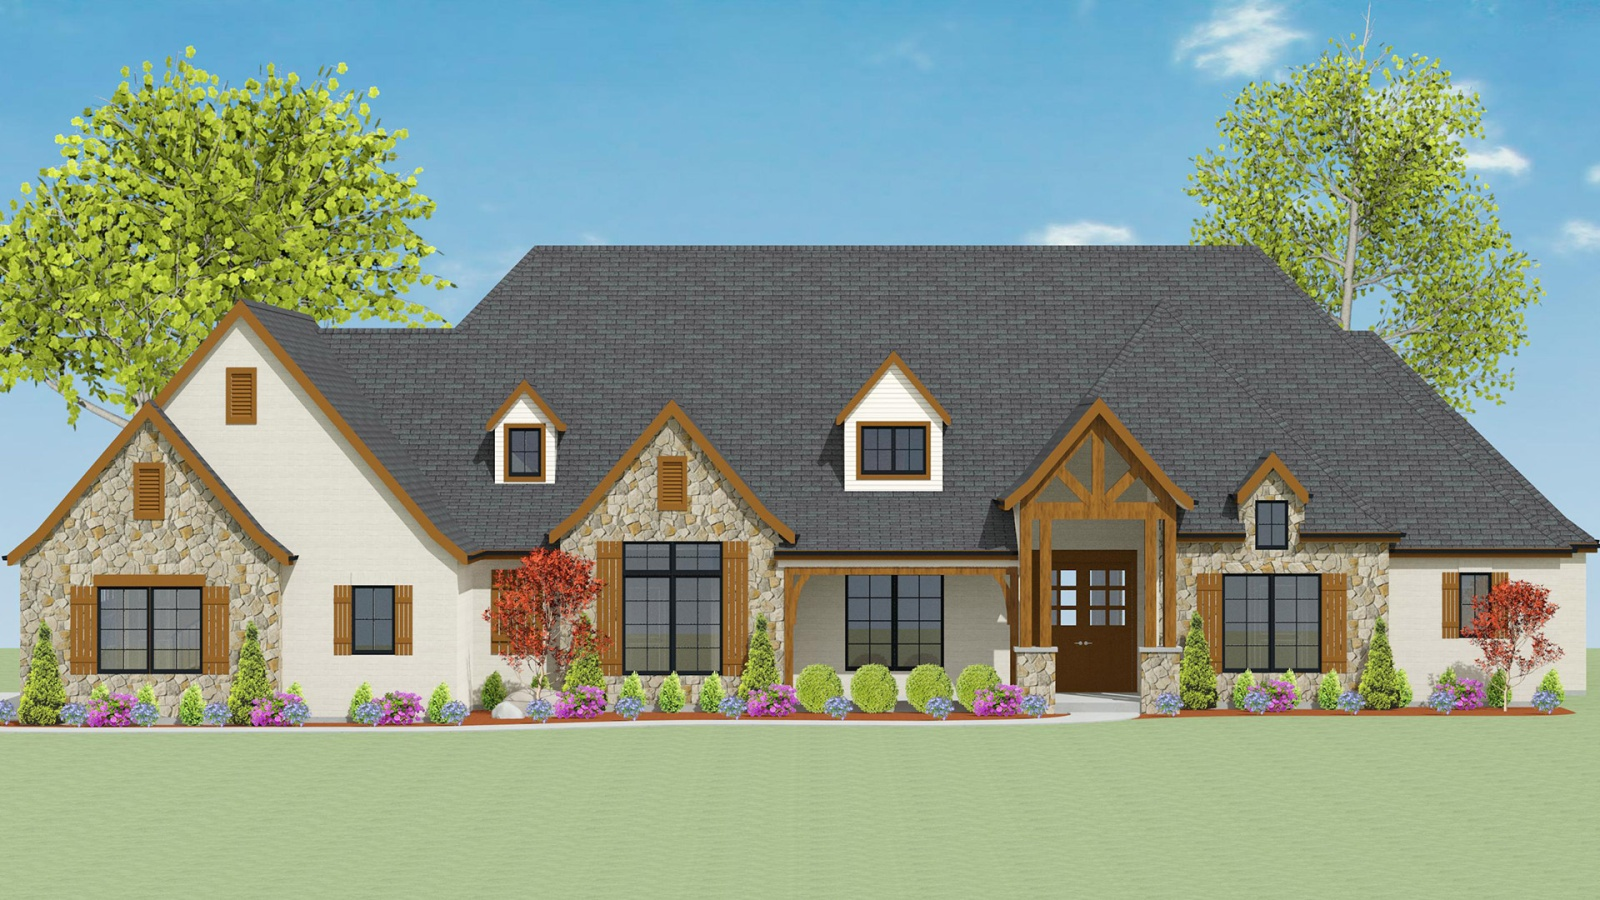 4 Bedrooms Bedrooms, ,4 BathroomsBathrooms,Custom Home,Home Plans,1089